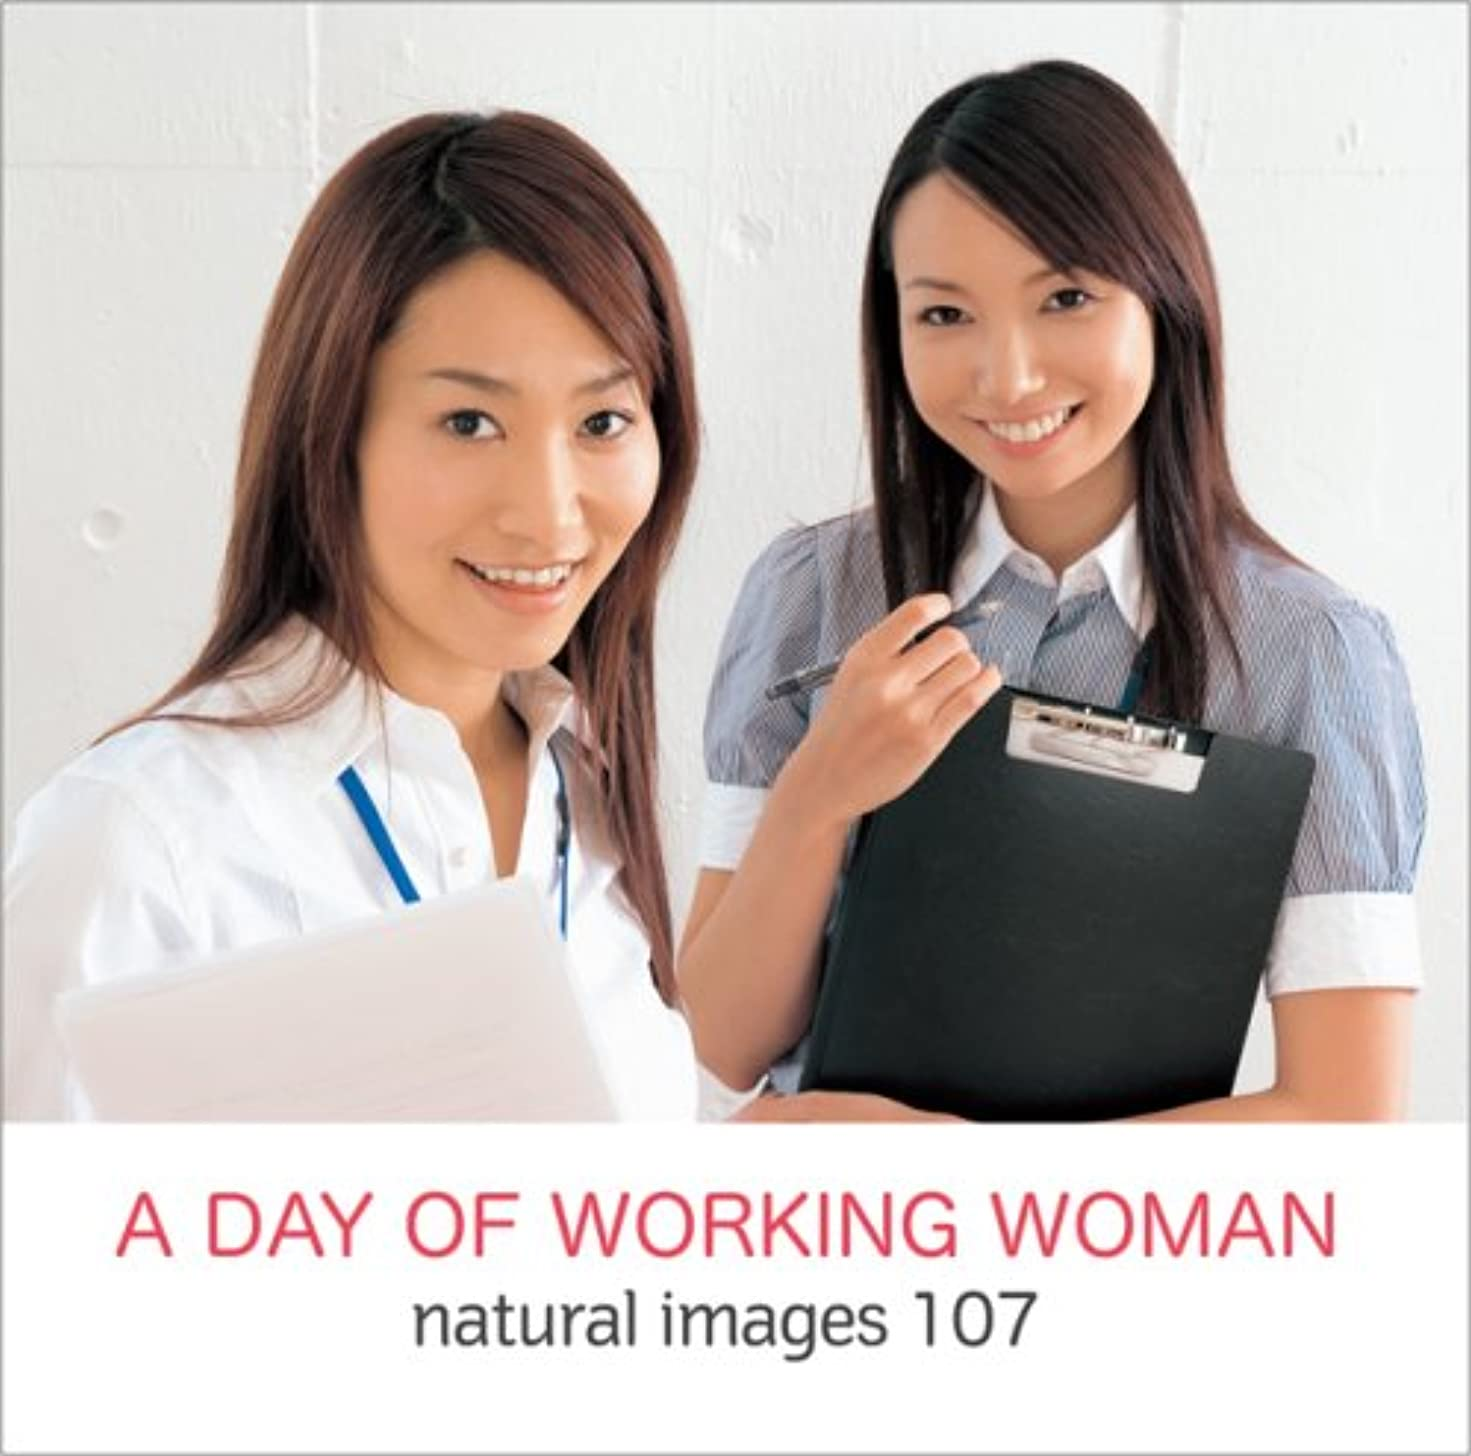 経営者会議帝国natural images Vol.107 A DAY OF WORKING WOMAN